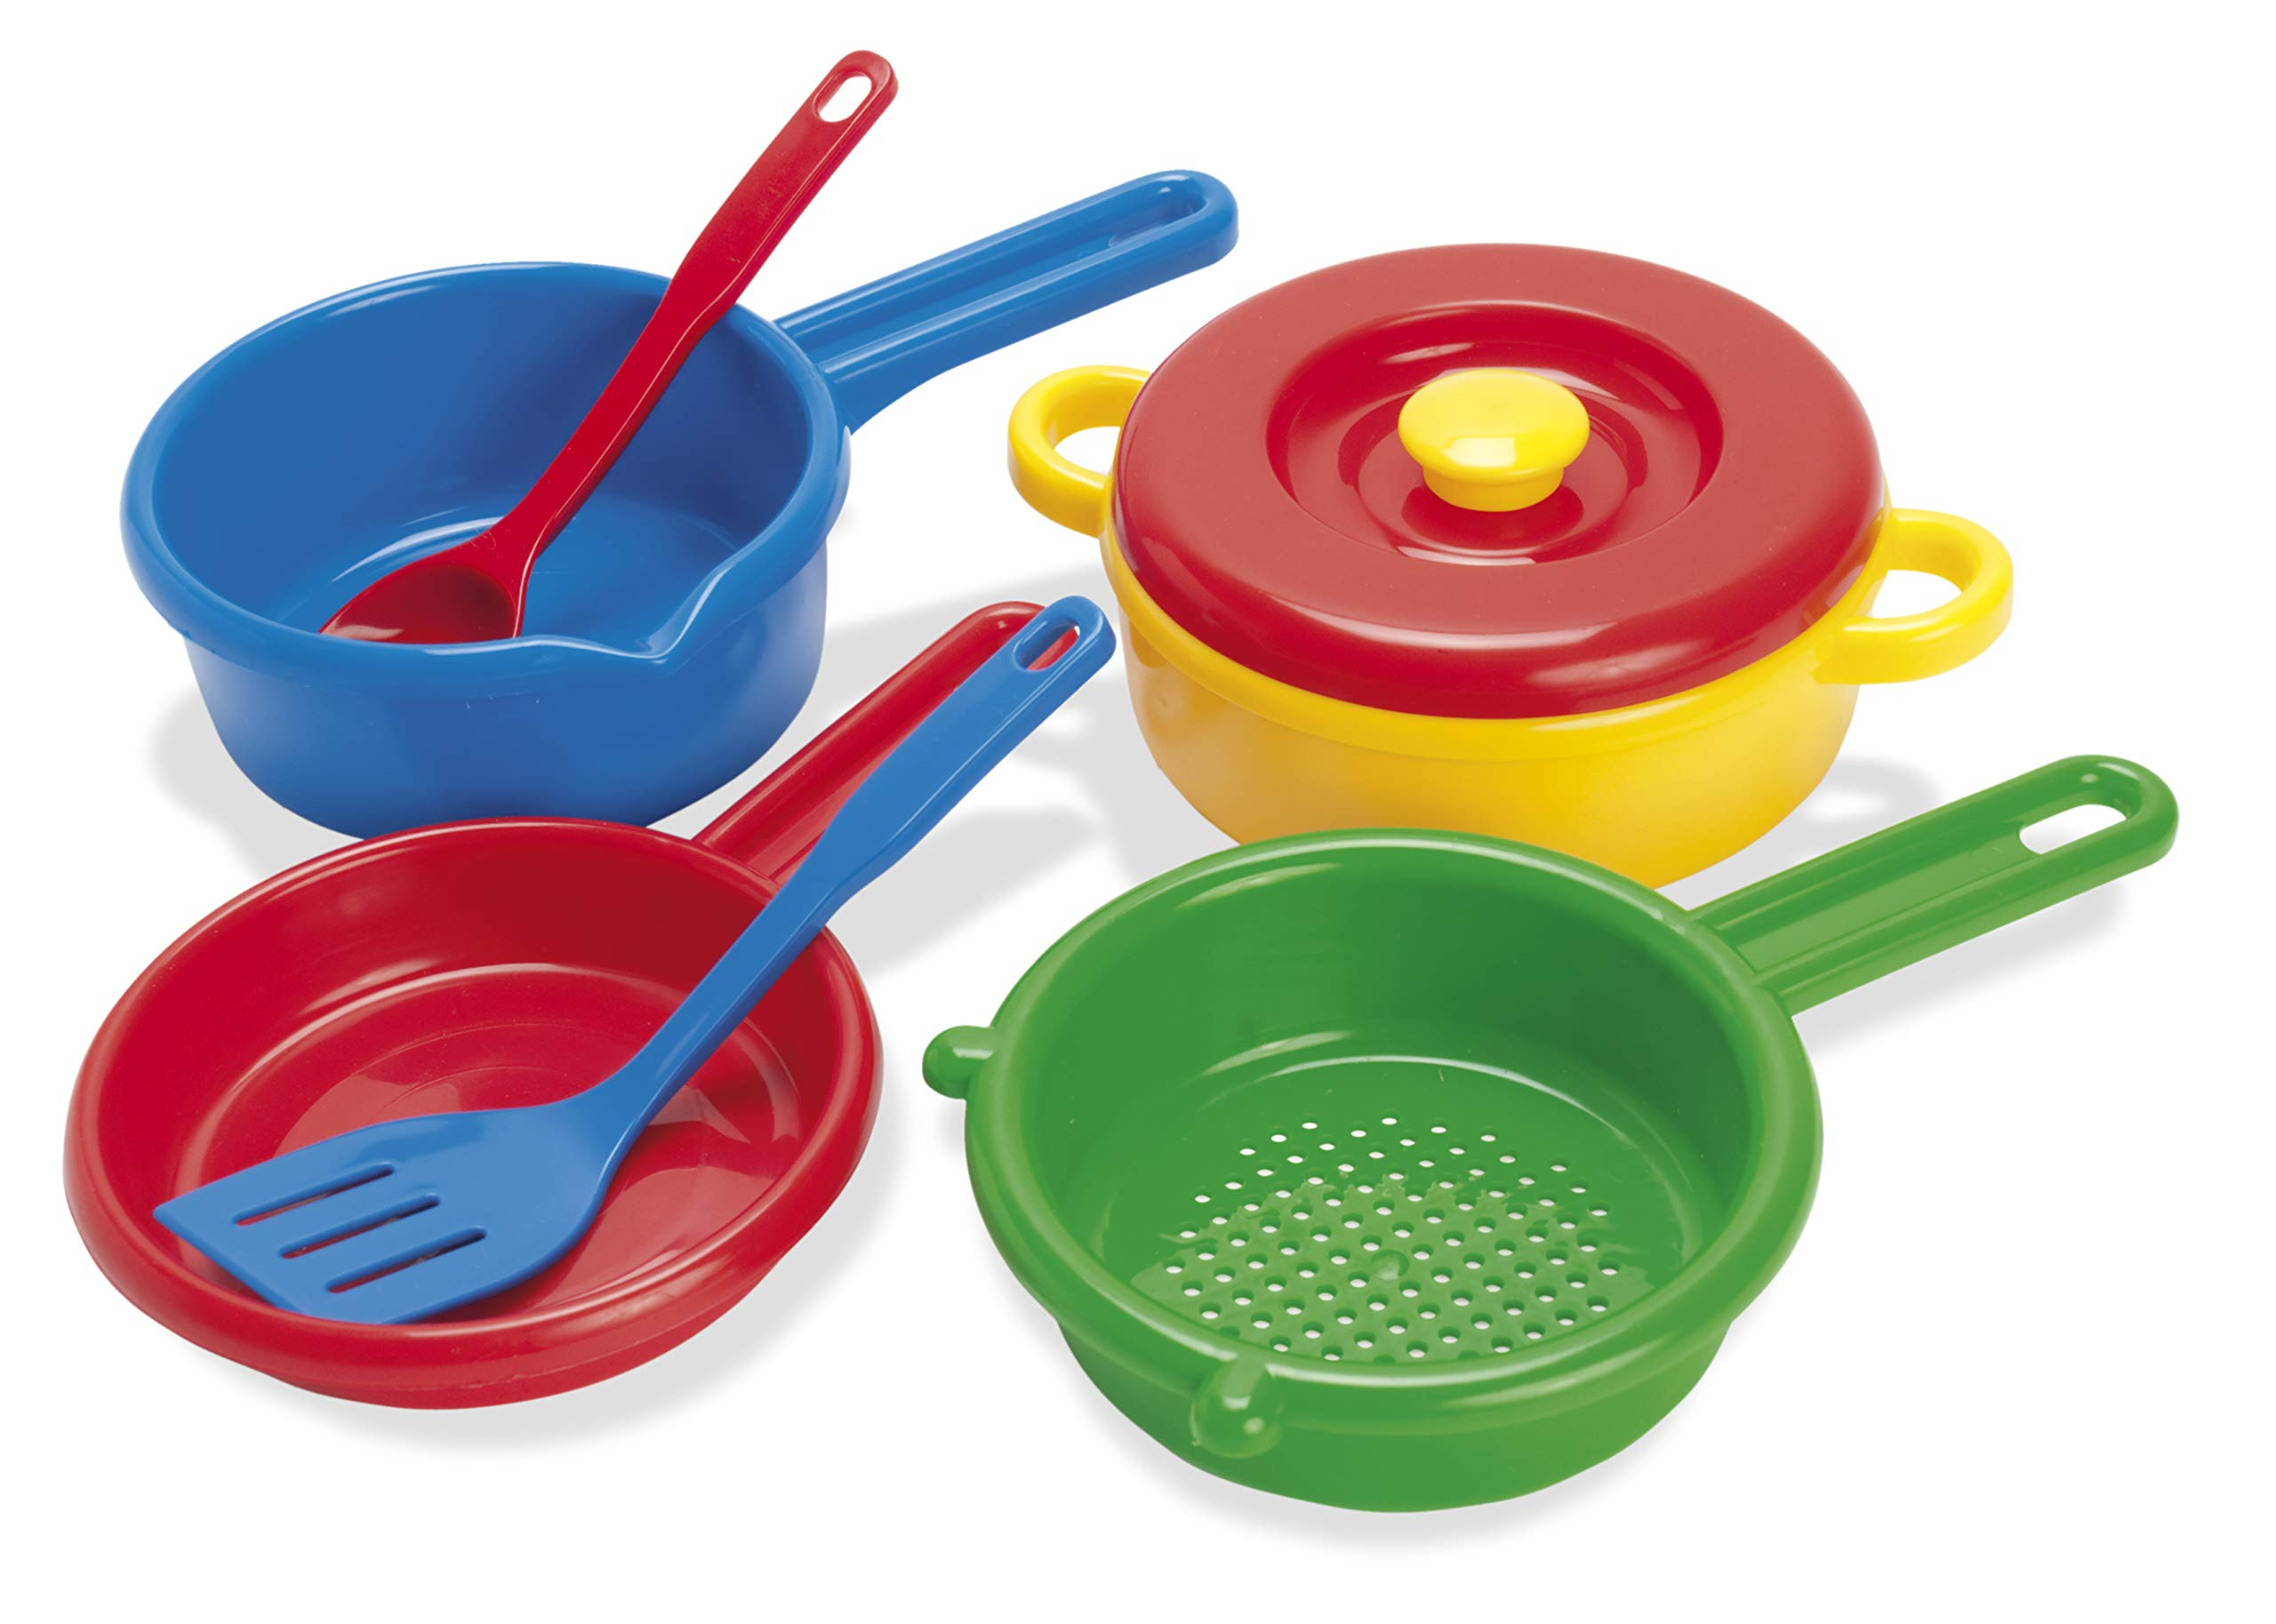 American Educational Products DT-4206 Pot, Sieve and Pan Activity Set, 3.904'' Height, 6.822'' Wide, 11.5051'' Length by American Educational Products